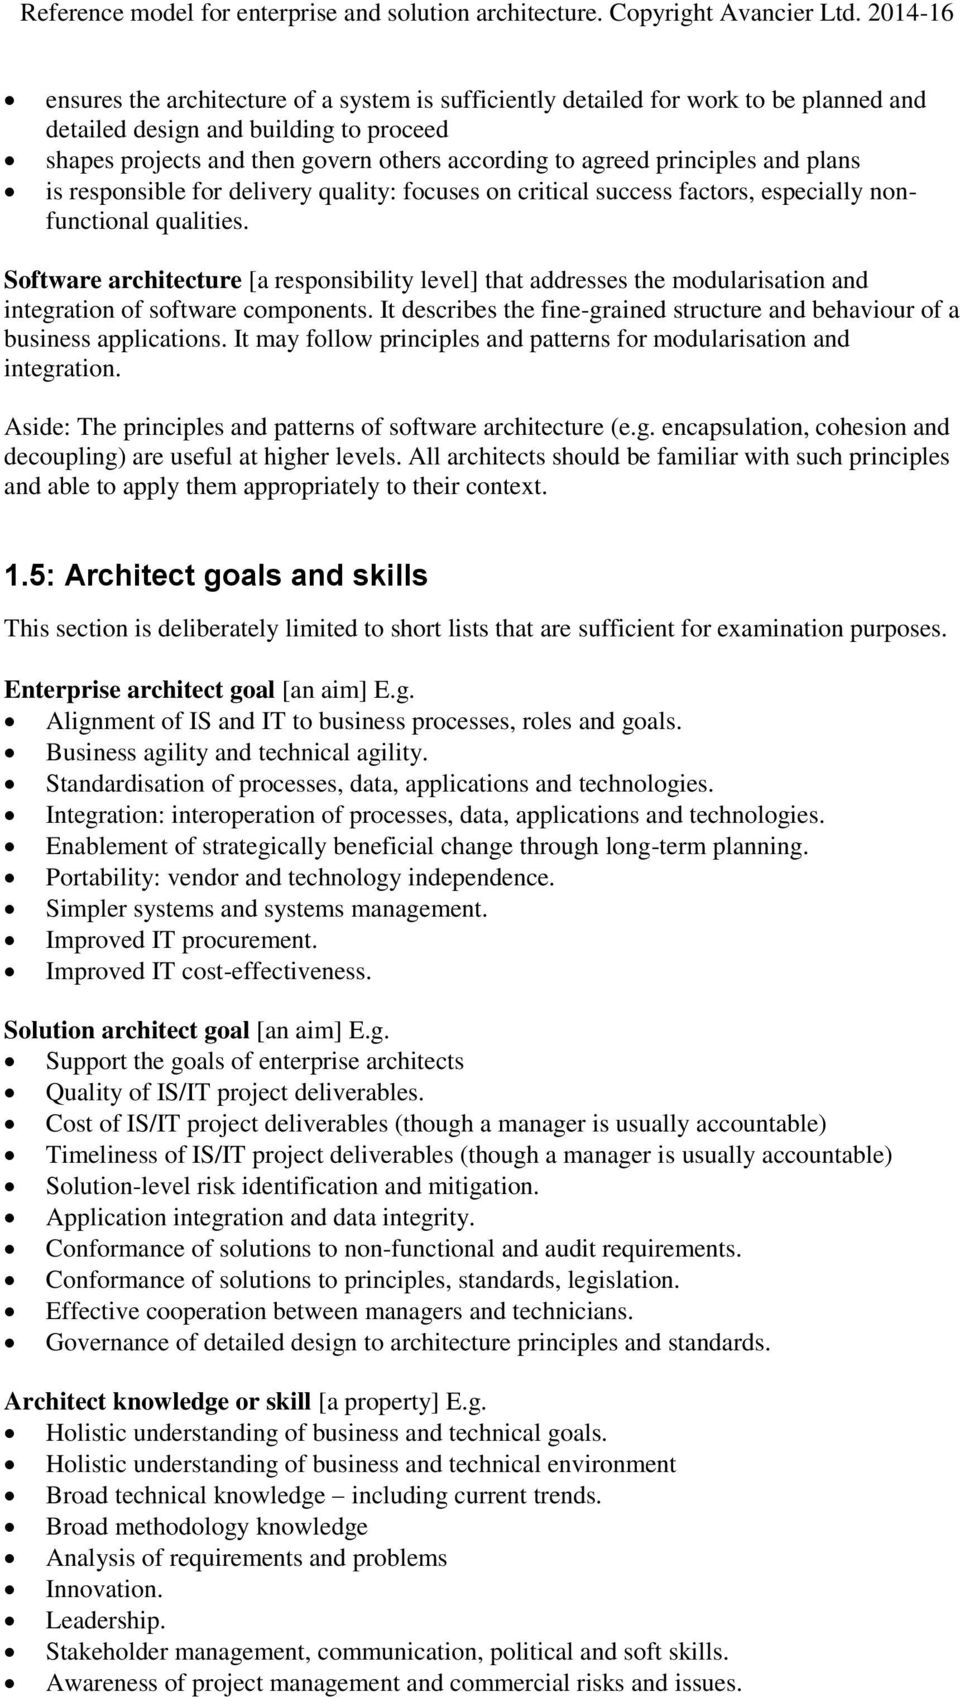 Reference Model for Enterprise and Solution Architecture v PDF